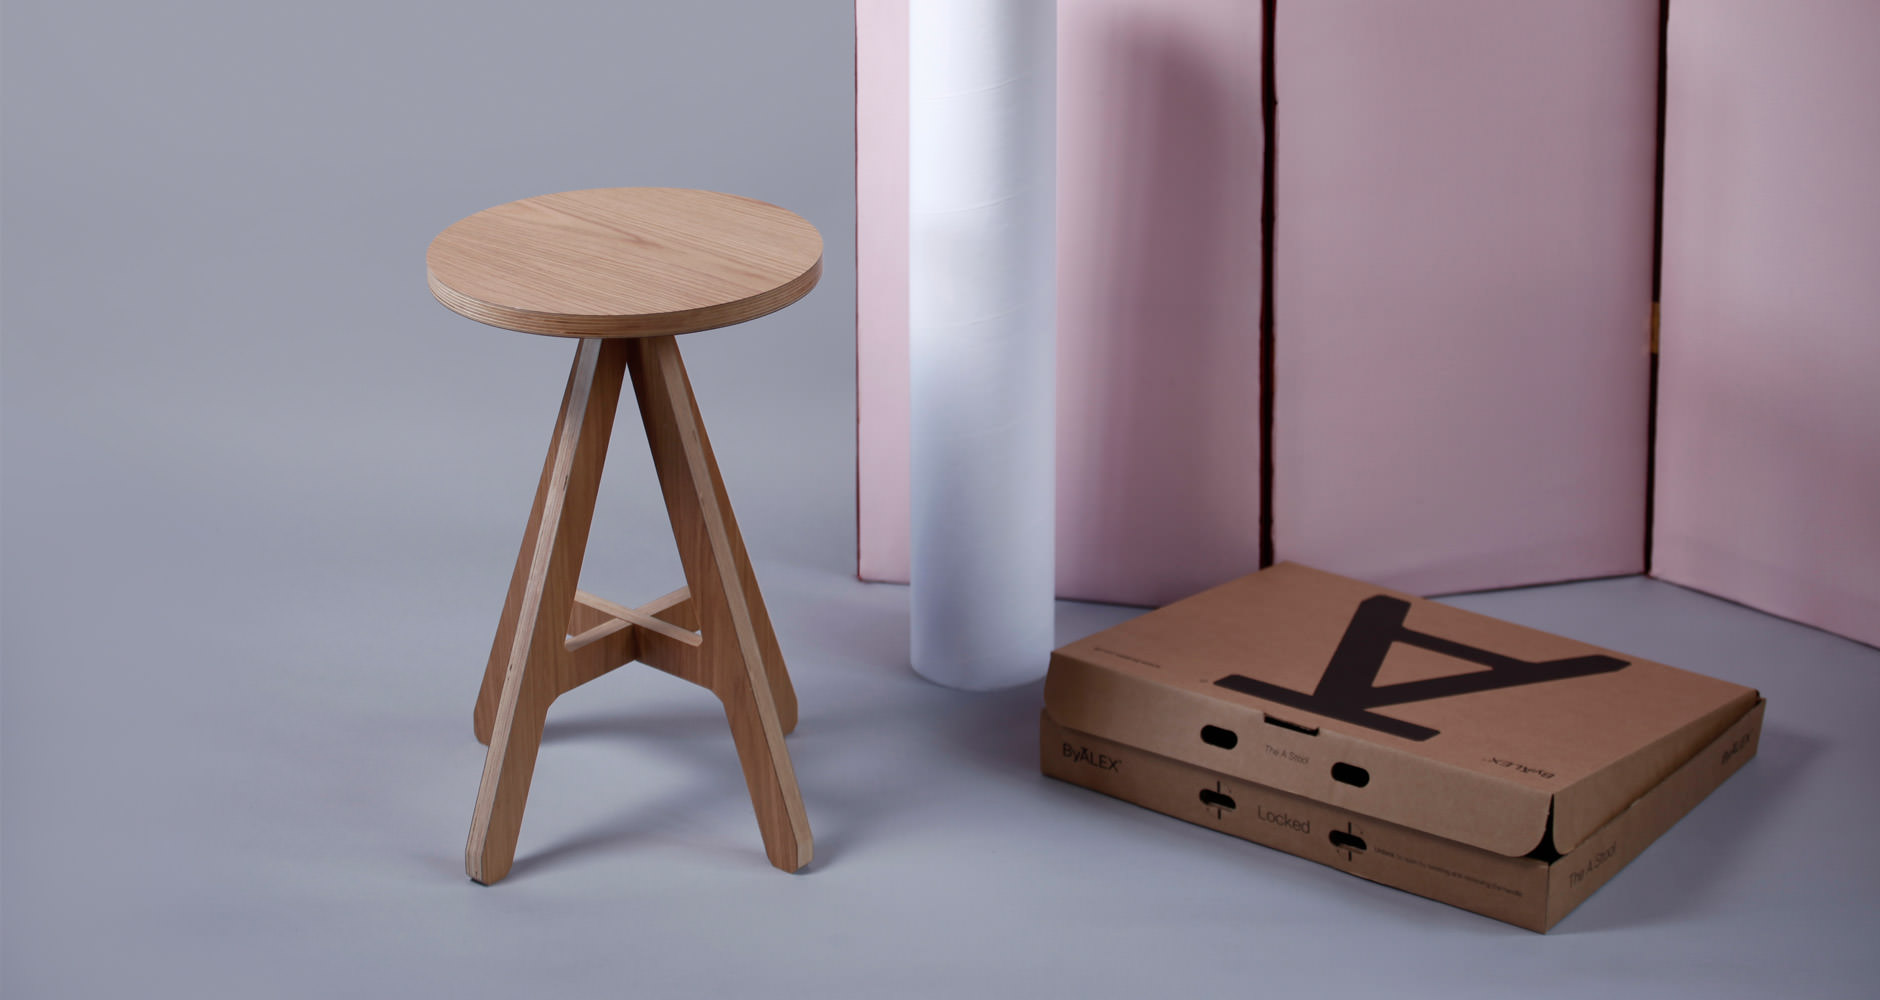 affordable-modern-wood-furniture-byalex